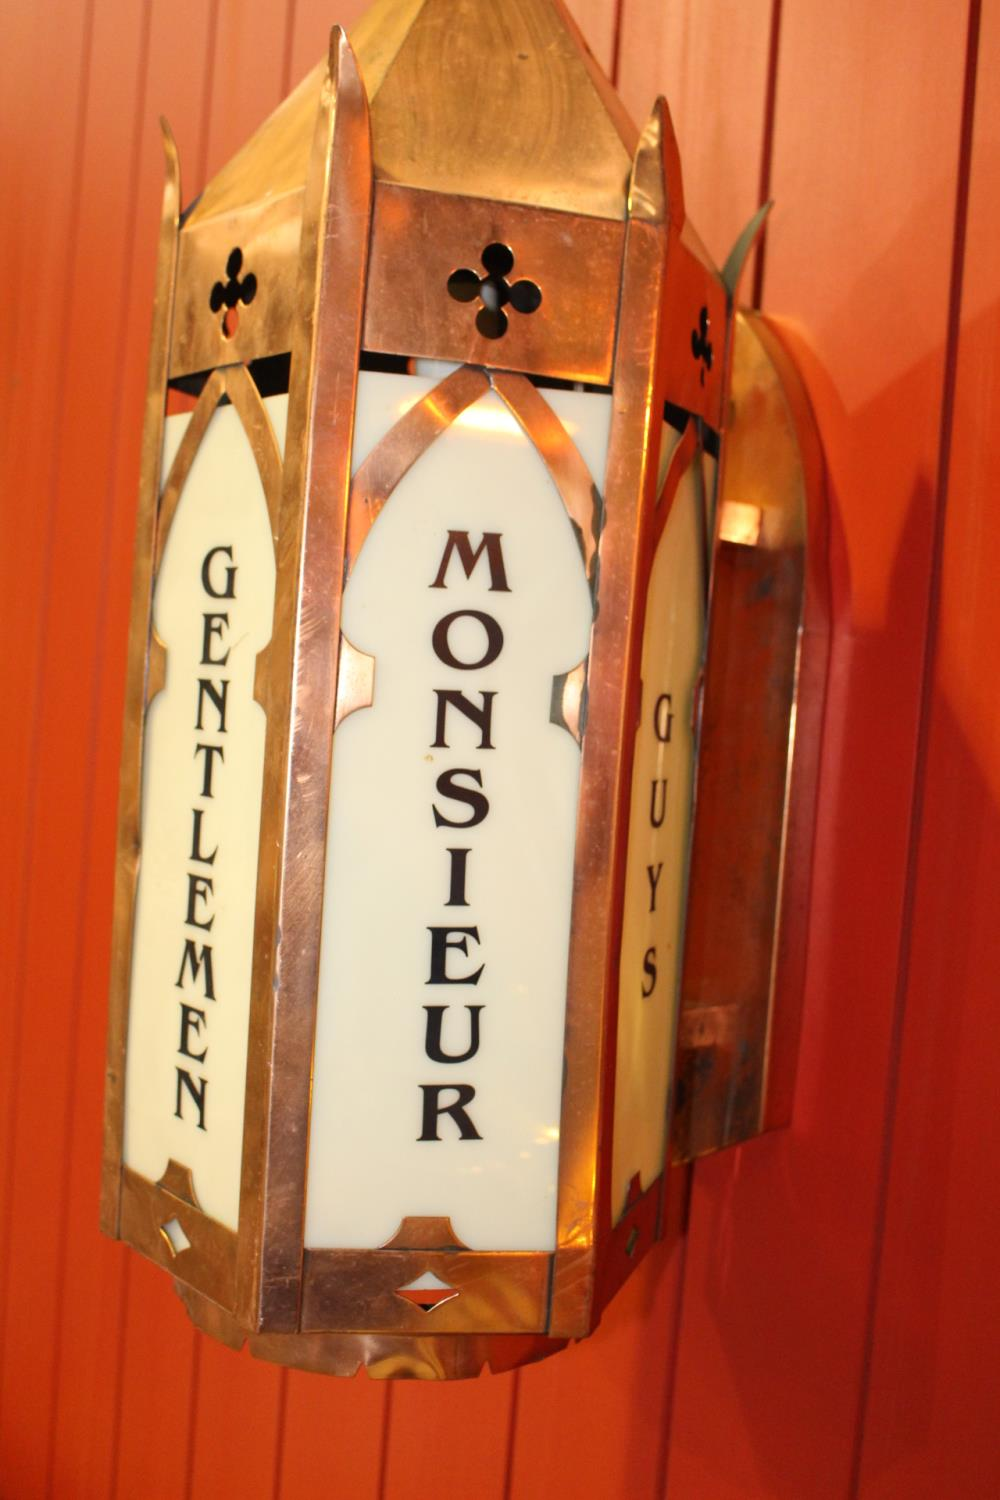 Copper multilingual light up Toilet sign - Image 3 of 3